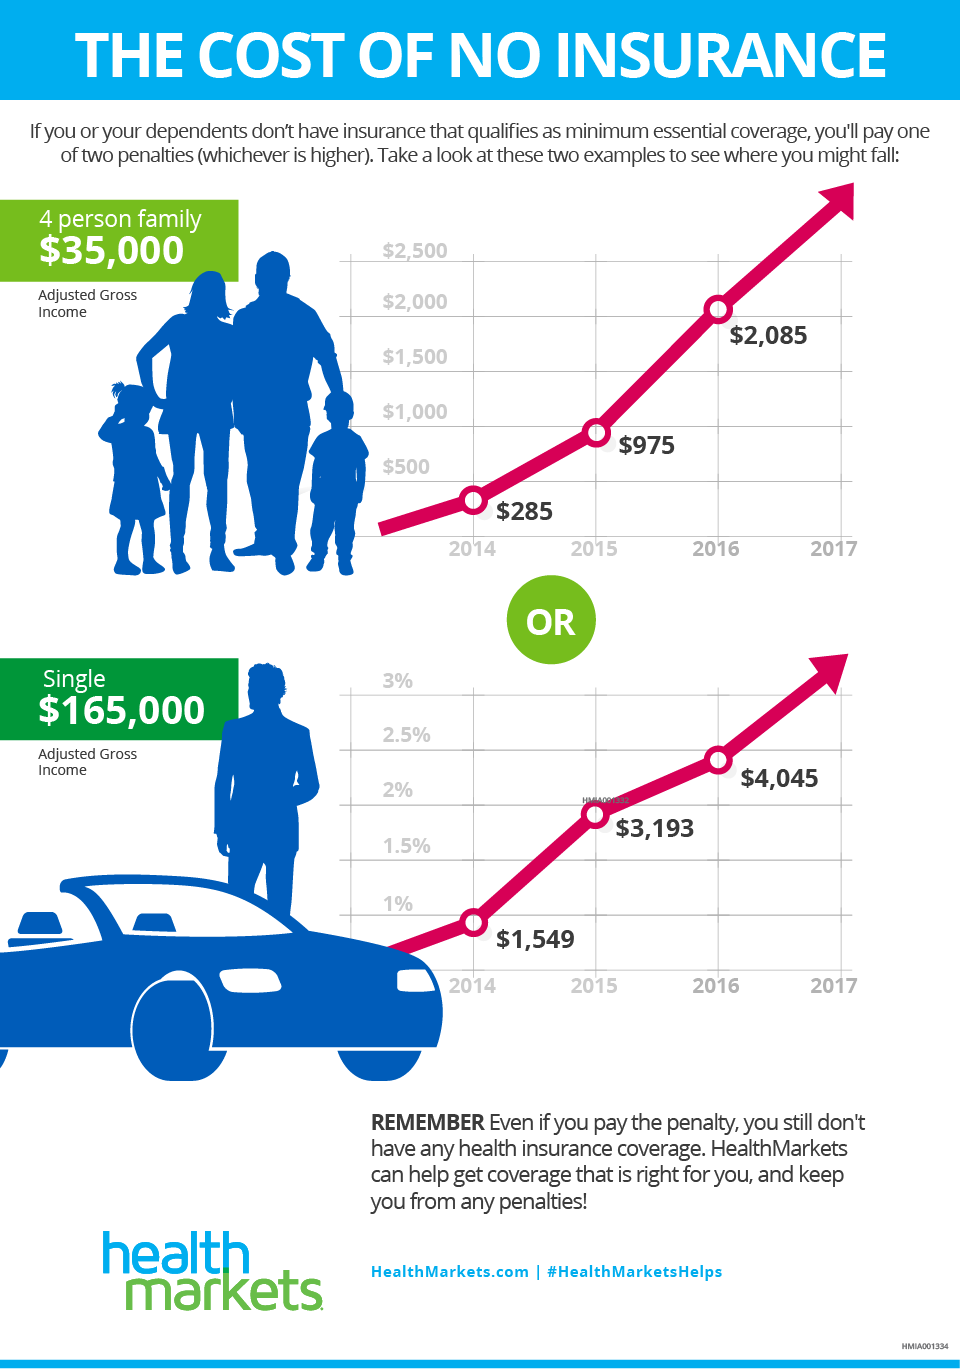 The Cost Of Not Having Insurance Infographic With Images